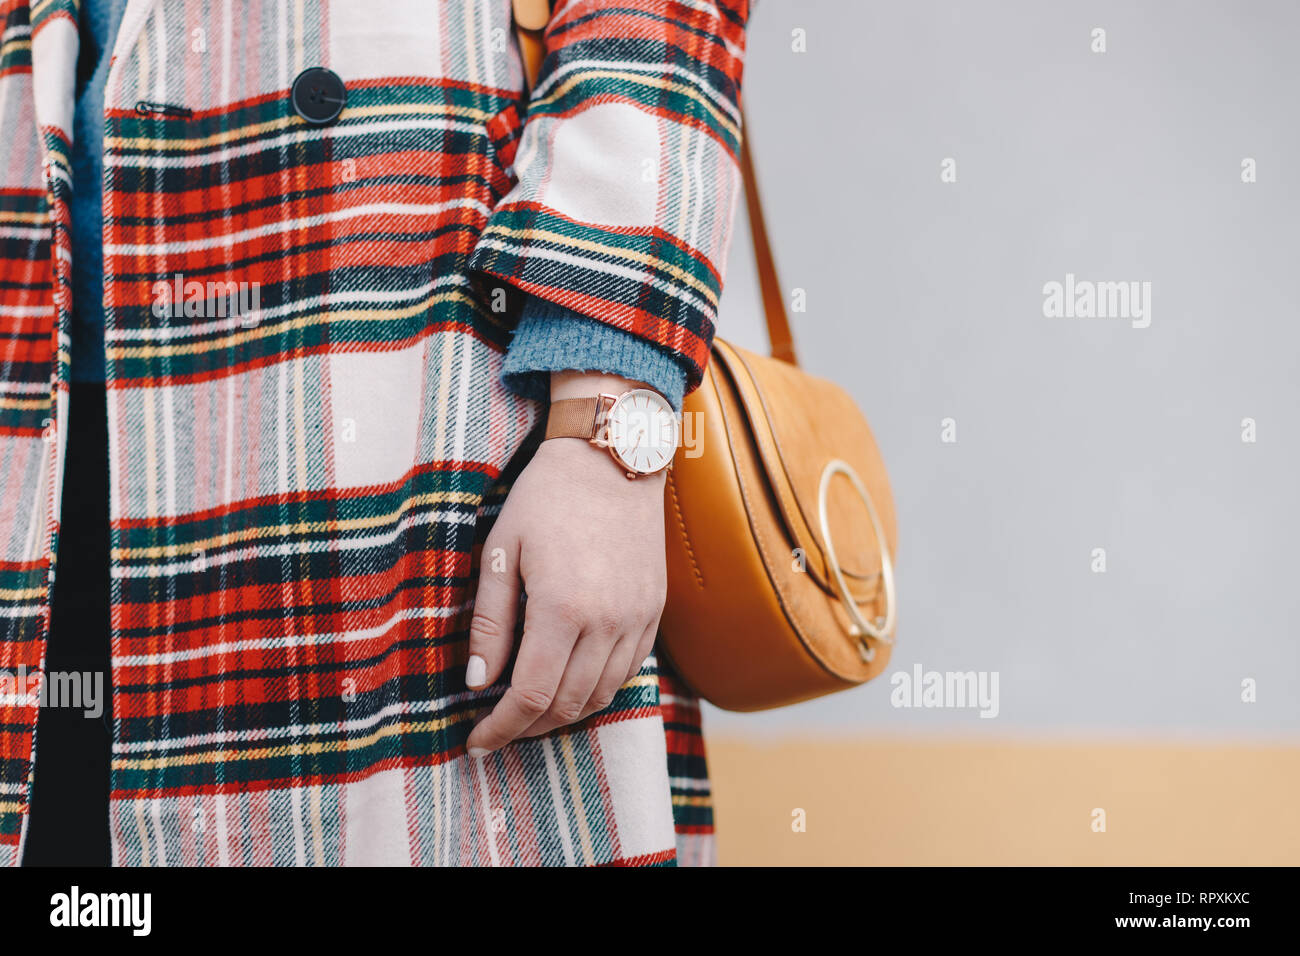 Close up detail of stylish young woman wearing a coat with tartan pattern and a wrist watch while holding a fancy yellow bag in front of a multicolore - Stock Image